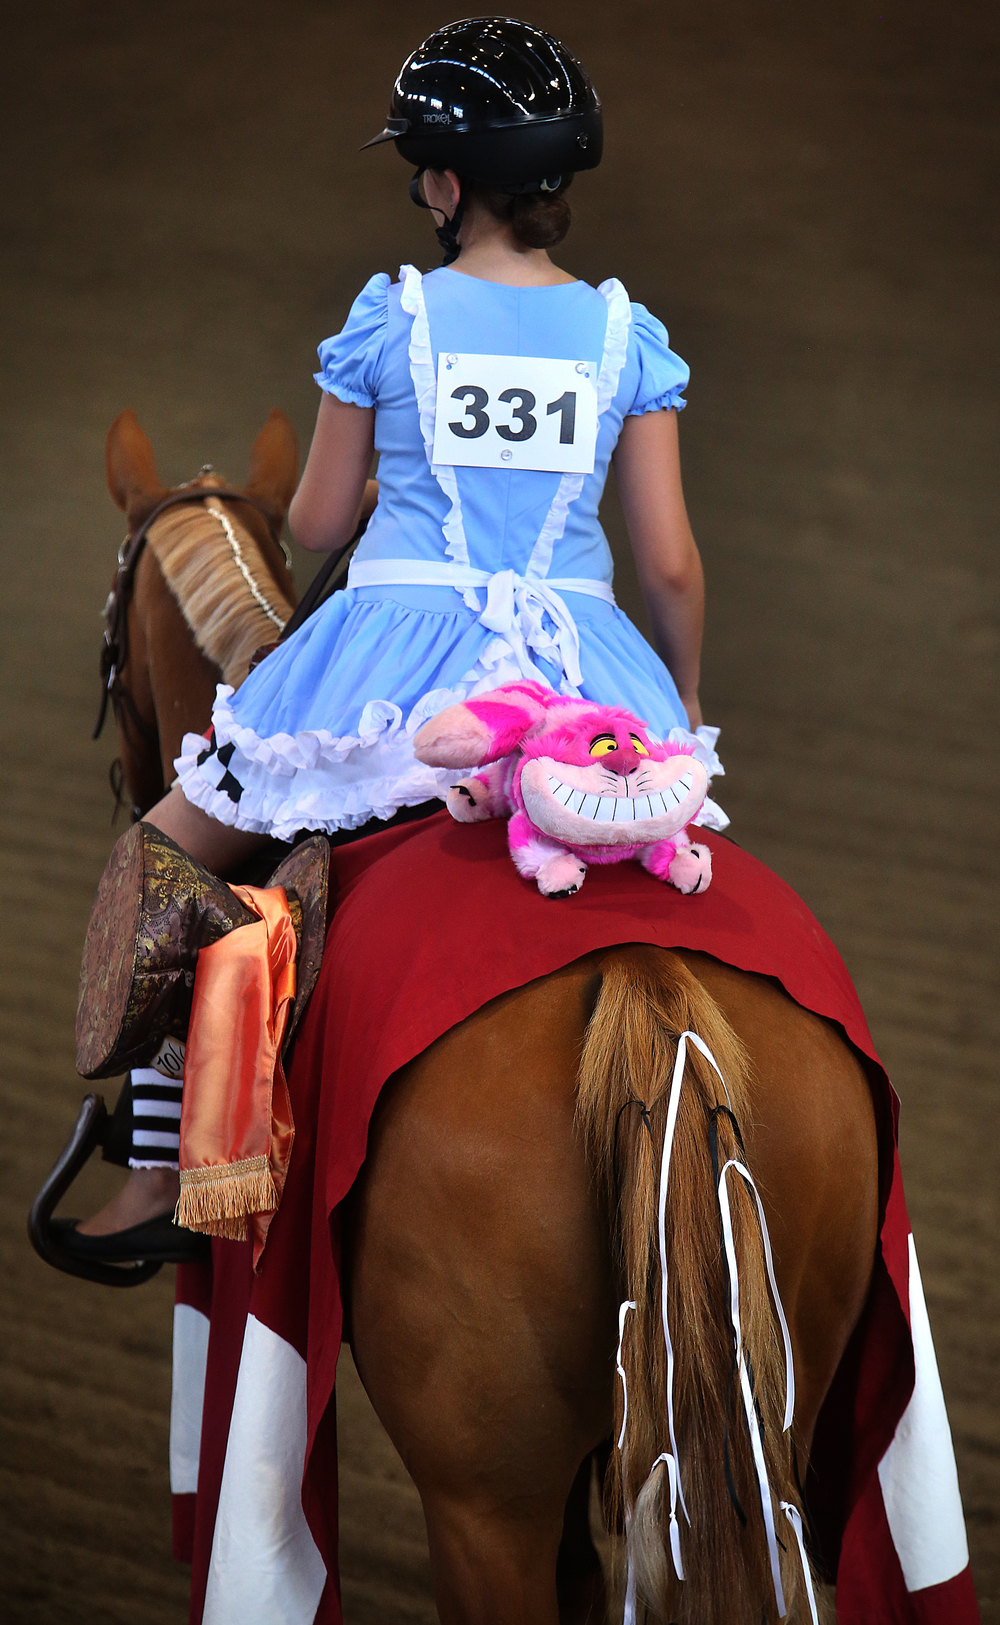 The Cheshire Cat of Alice in Wonderland fame holds on for dear life on the rear of horse Fantastic Royal Lady with Alice-aka Madisyn Hanson of Sangamon county-aboard. David Spencer/The State Journal-Register